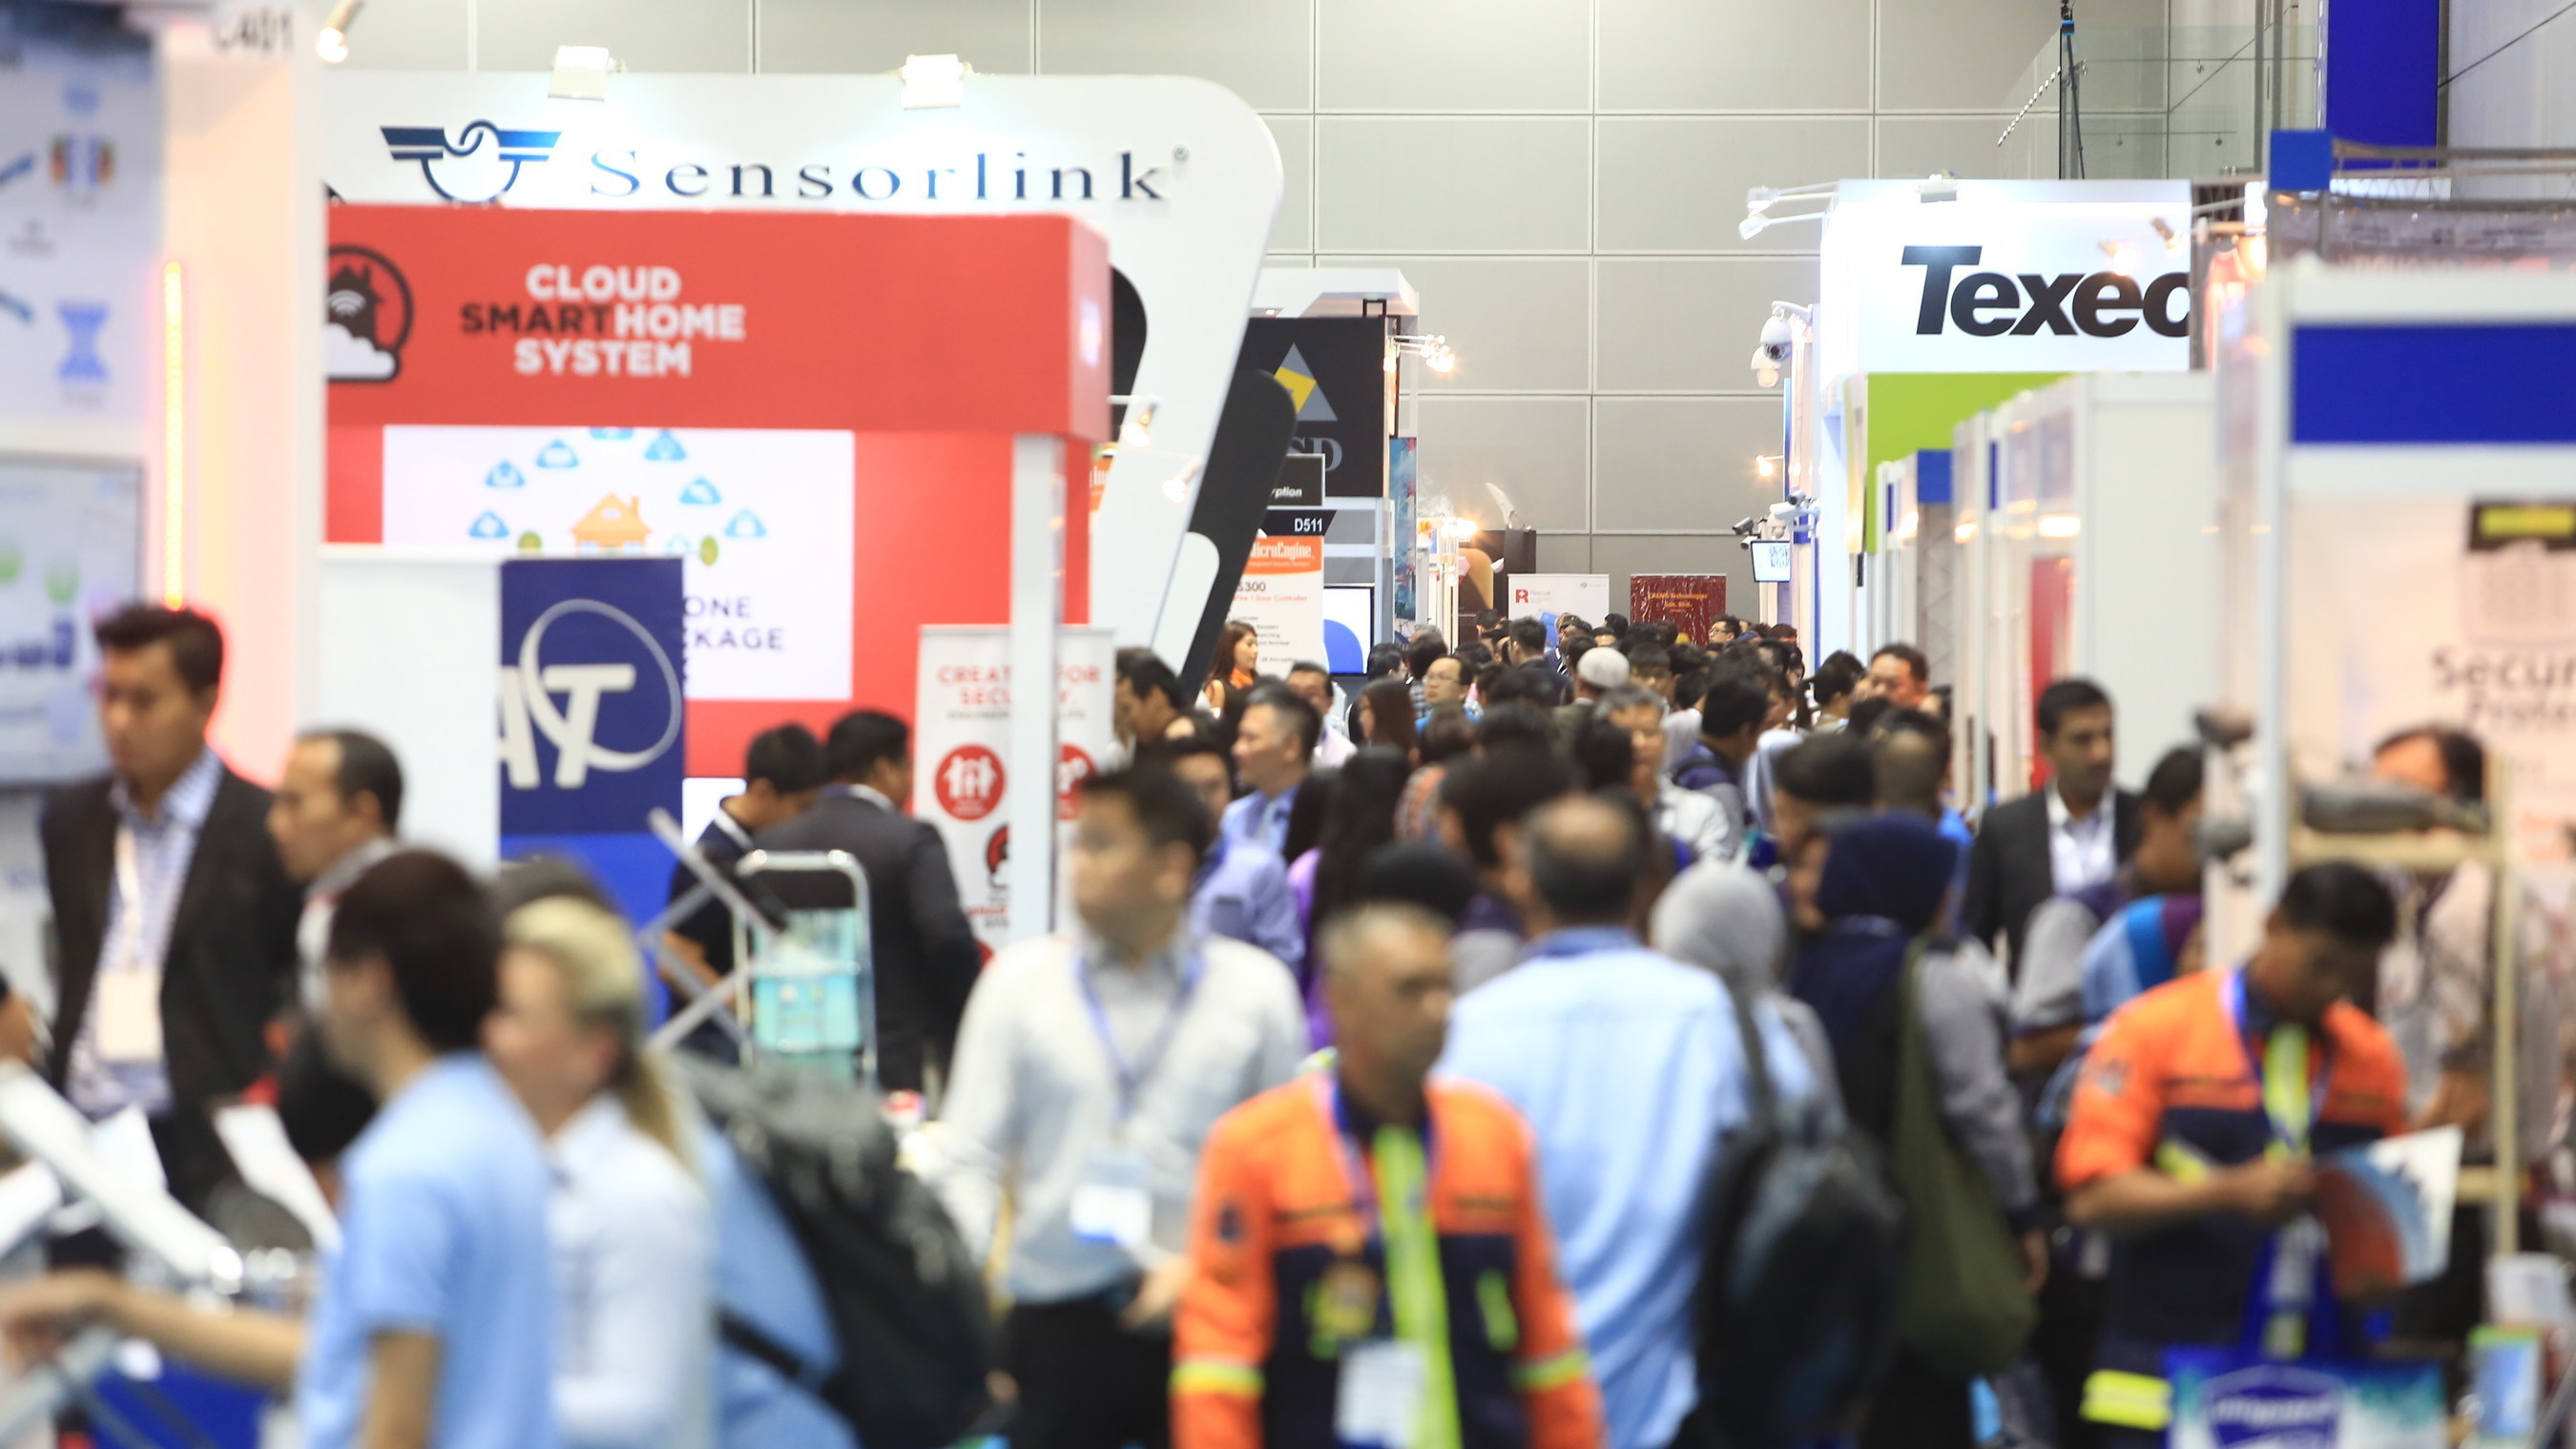 Visit the leading Security, Fire and Safety event in Southeast Asia, with more than 10,000 trade buyers, channel partners and end-users at IFSEC Southeast Asia 2016